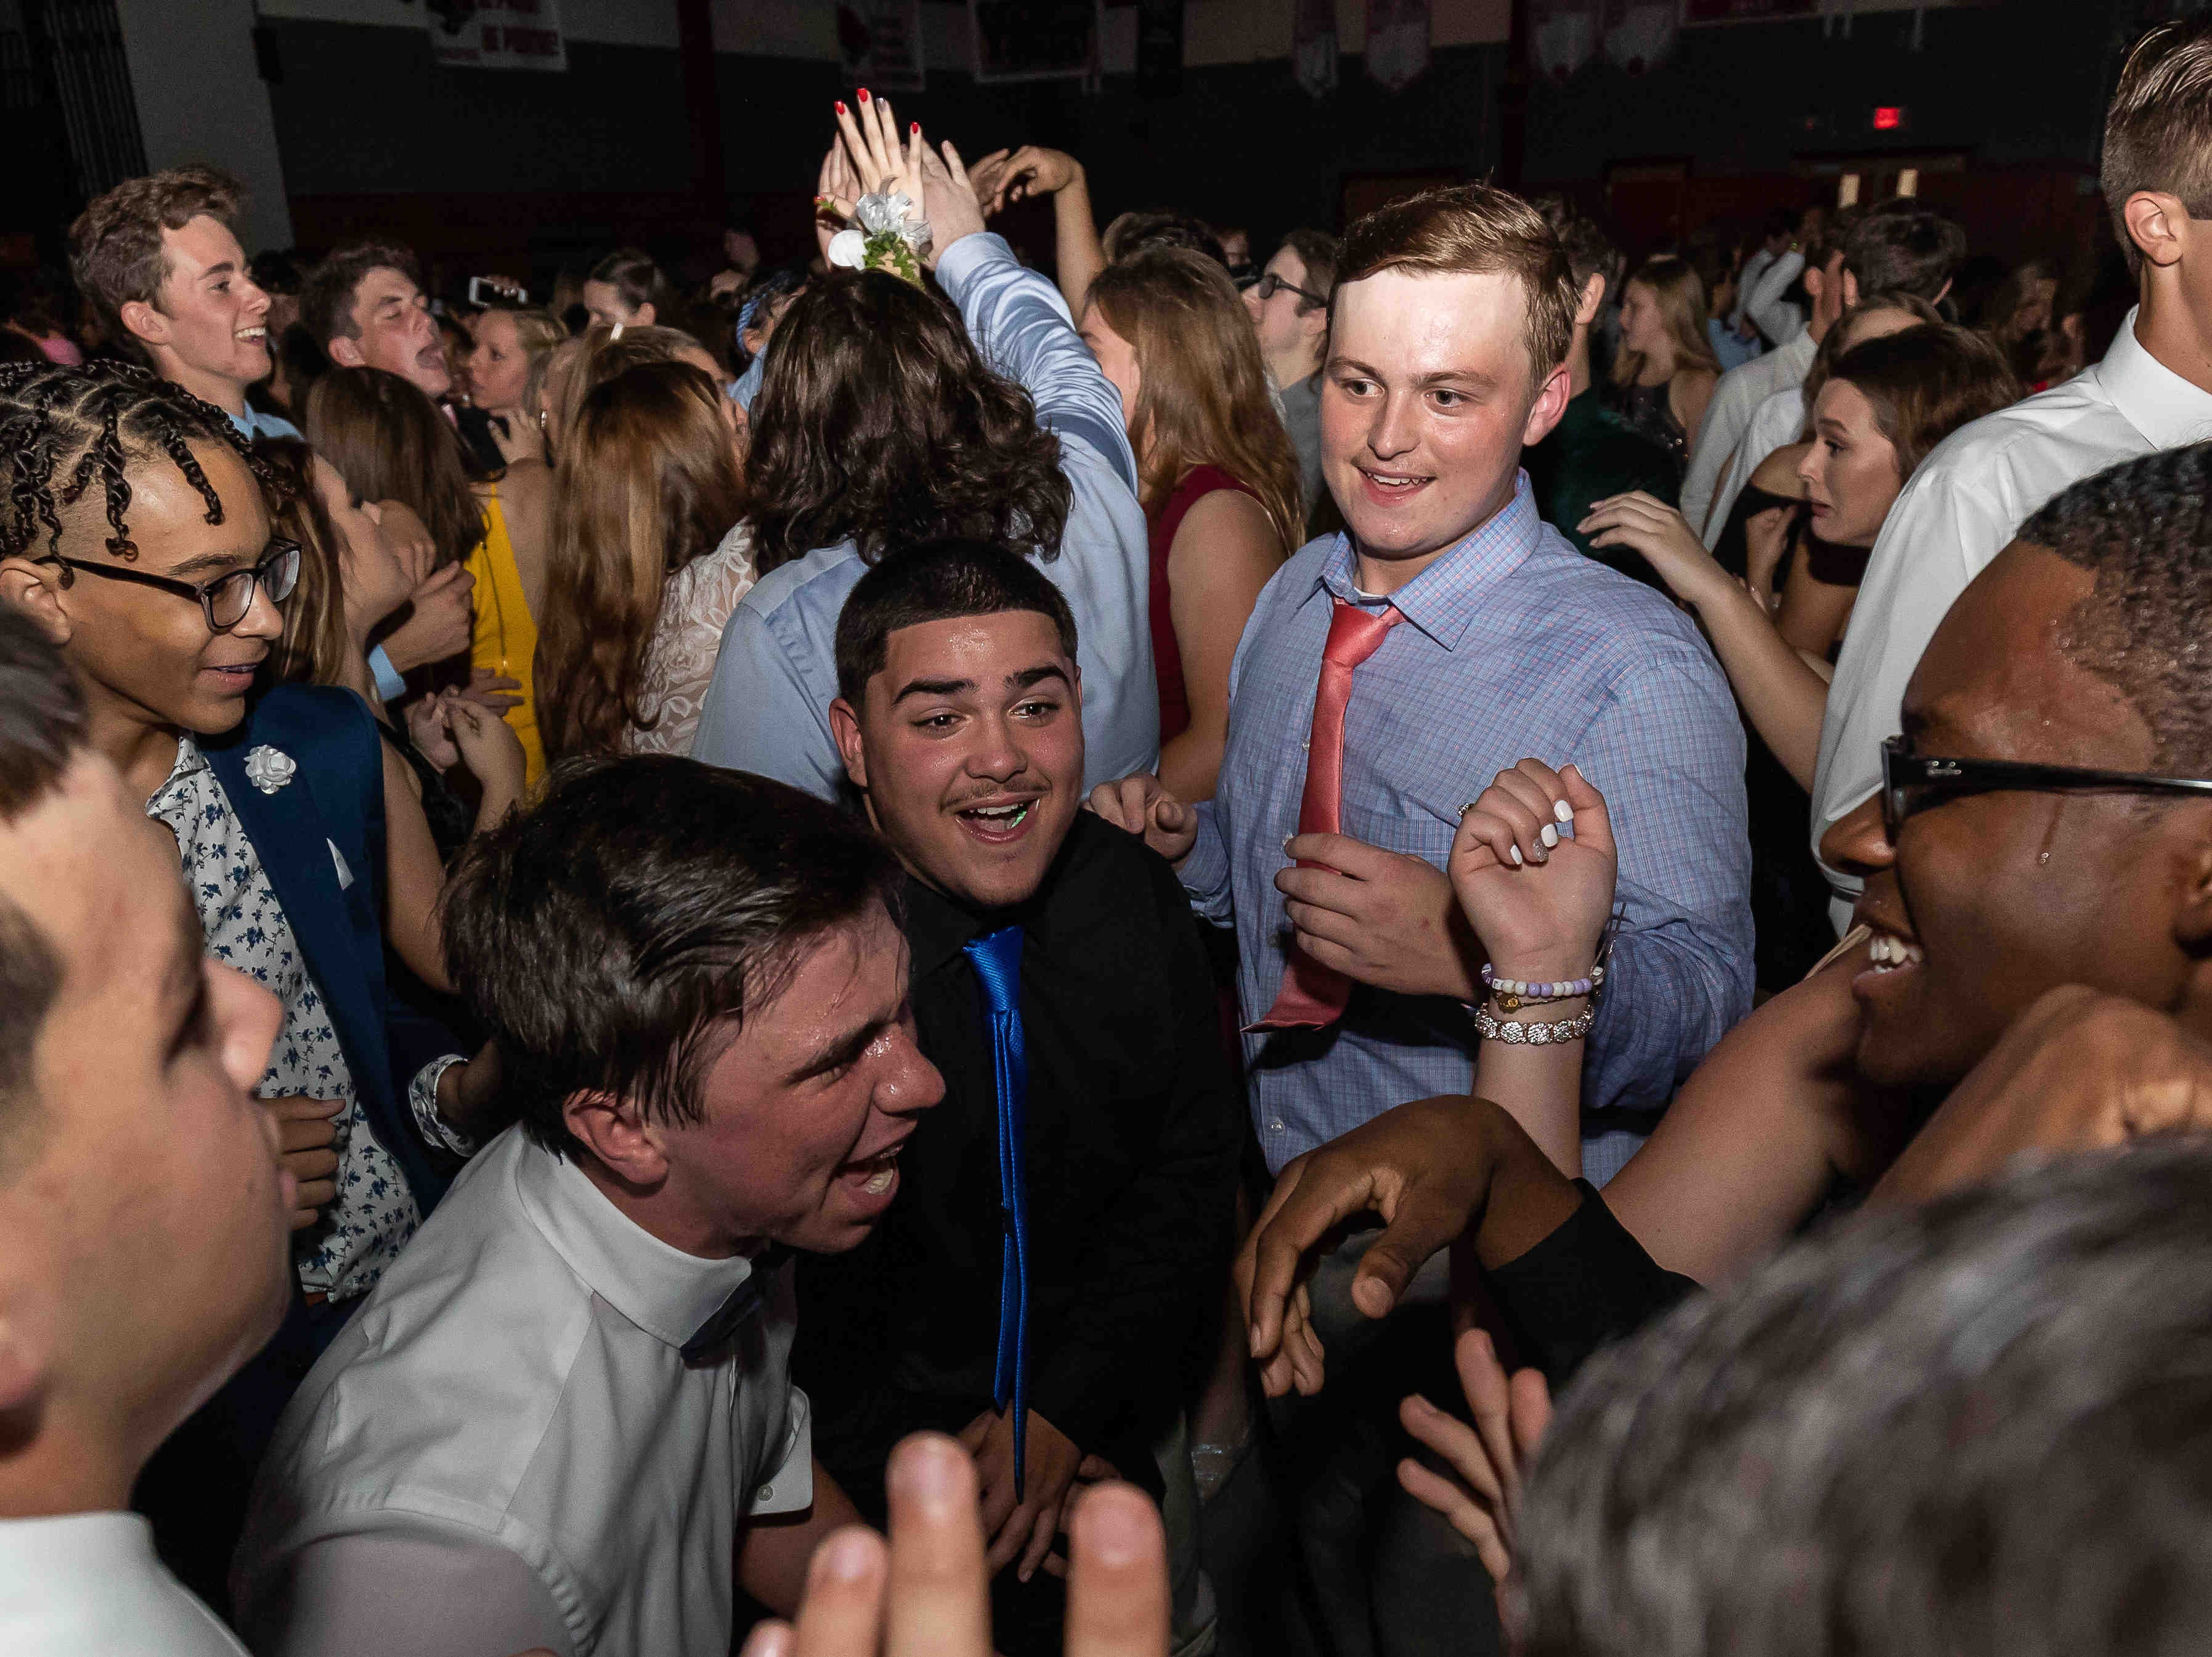 About 500 students attended the Conrad School Of Science Homecoming Dance at the school on Saturday, October 6, 2018.